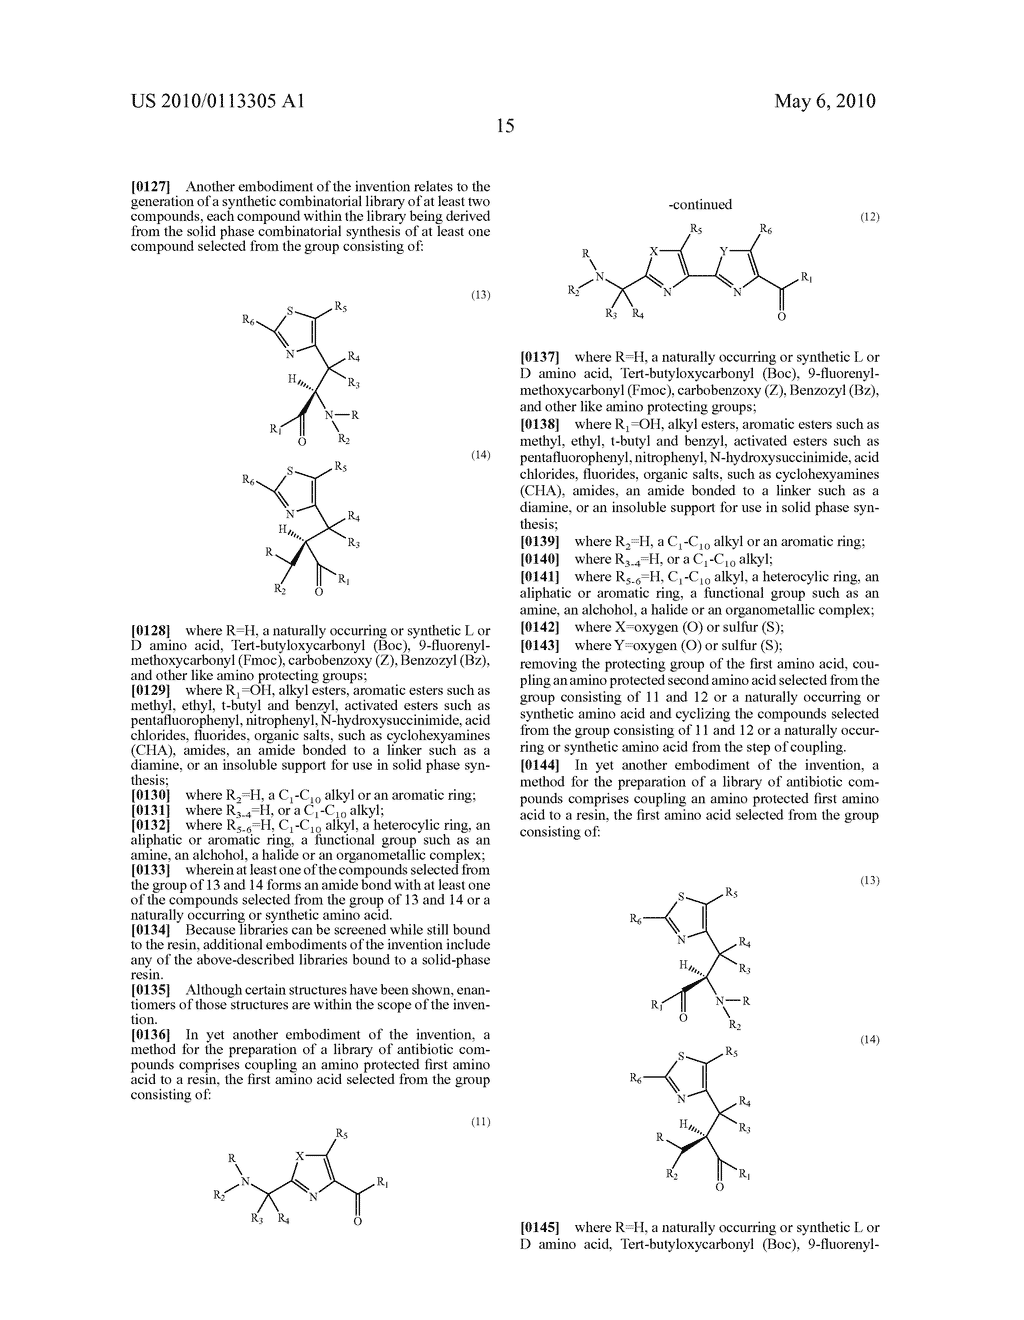 OXAZOLE AND THIAZOLE COMBINATORIAL LIBRARIES - diagram, schematic, and image 22